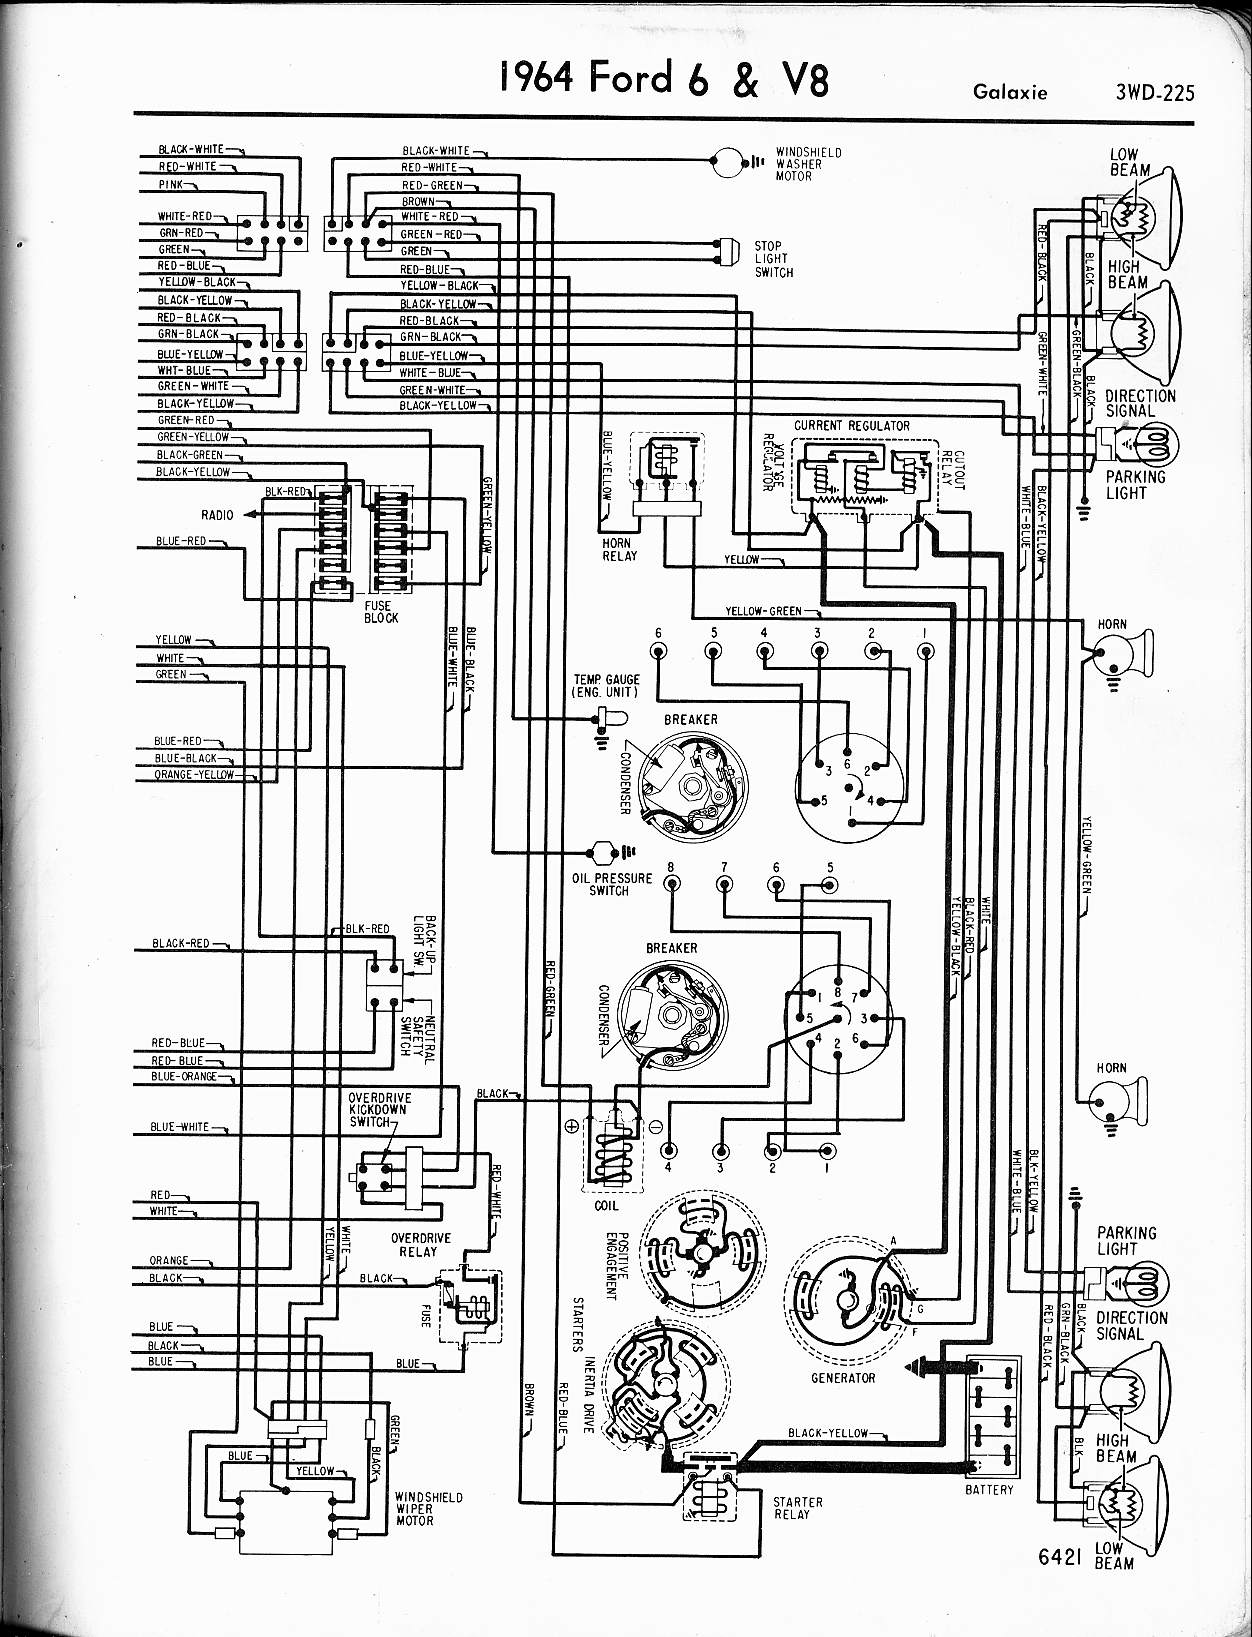 Ford Steering Column Wiring Diagram For For Ford Fairlane